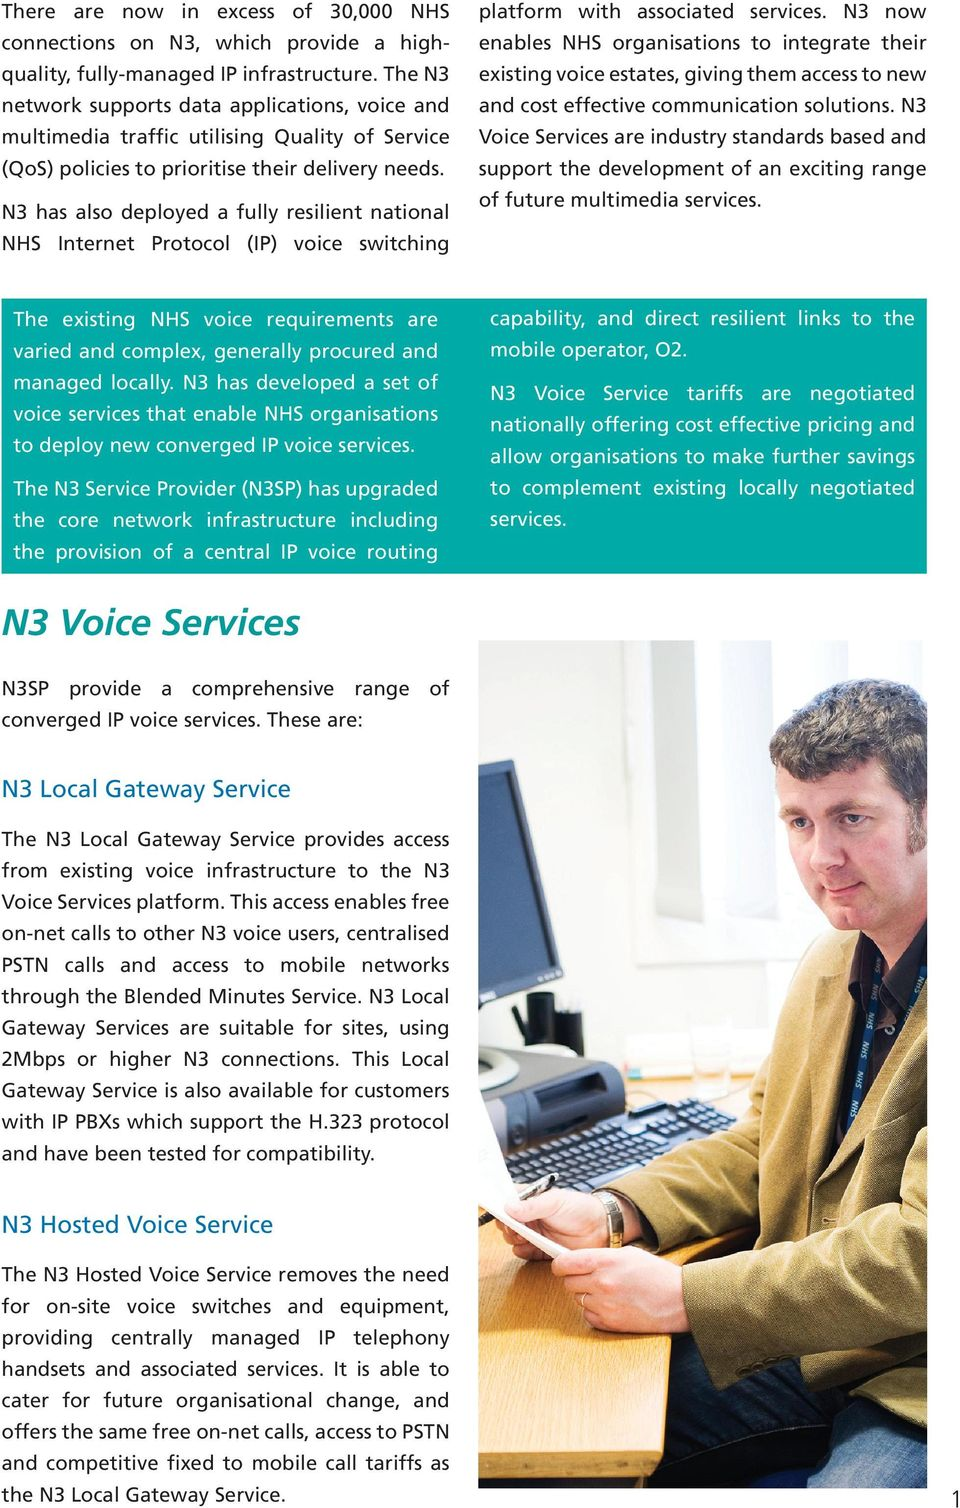 N3 has also deployed a fully resilient national NHS Internet Protocol (IP) voice switching platform with associated services.